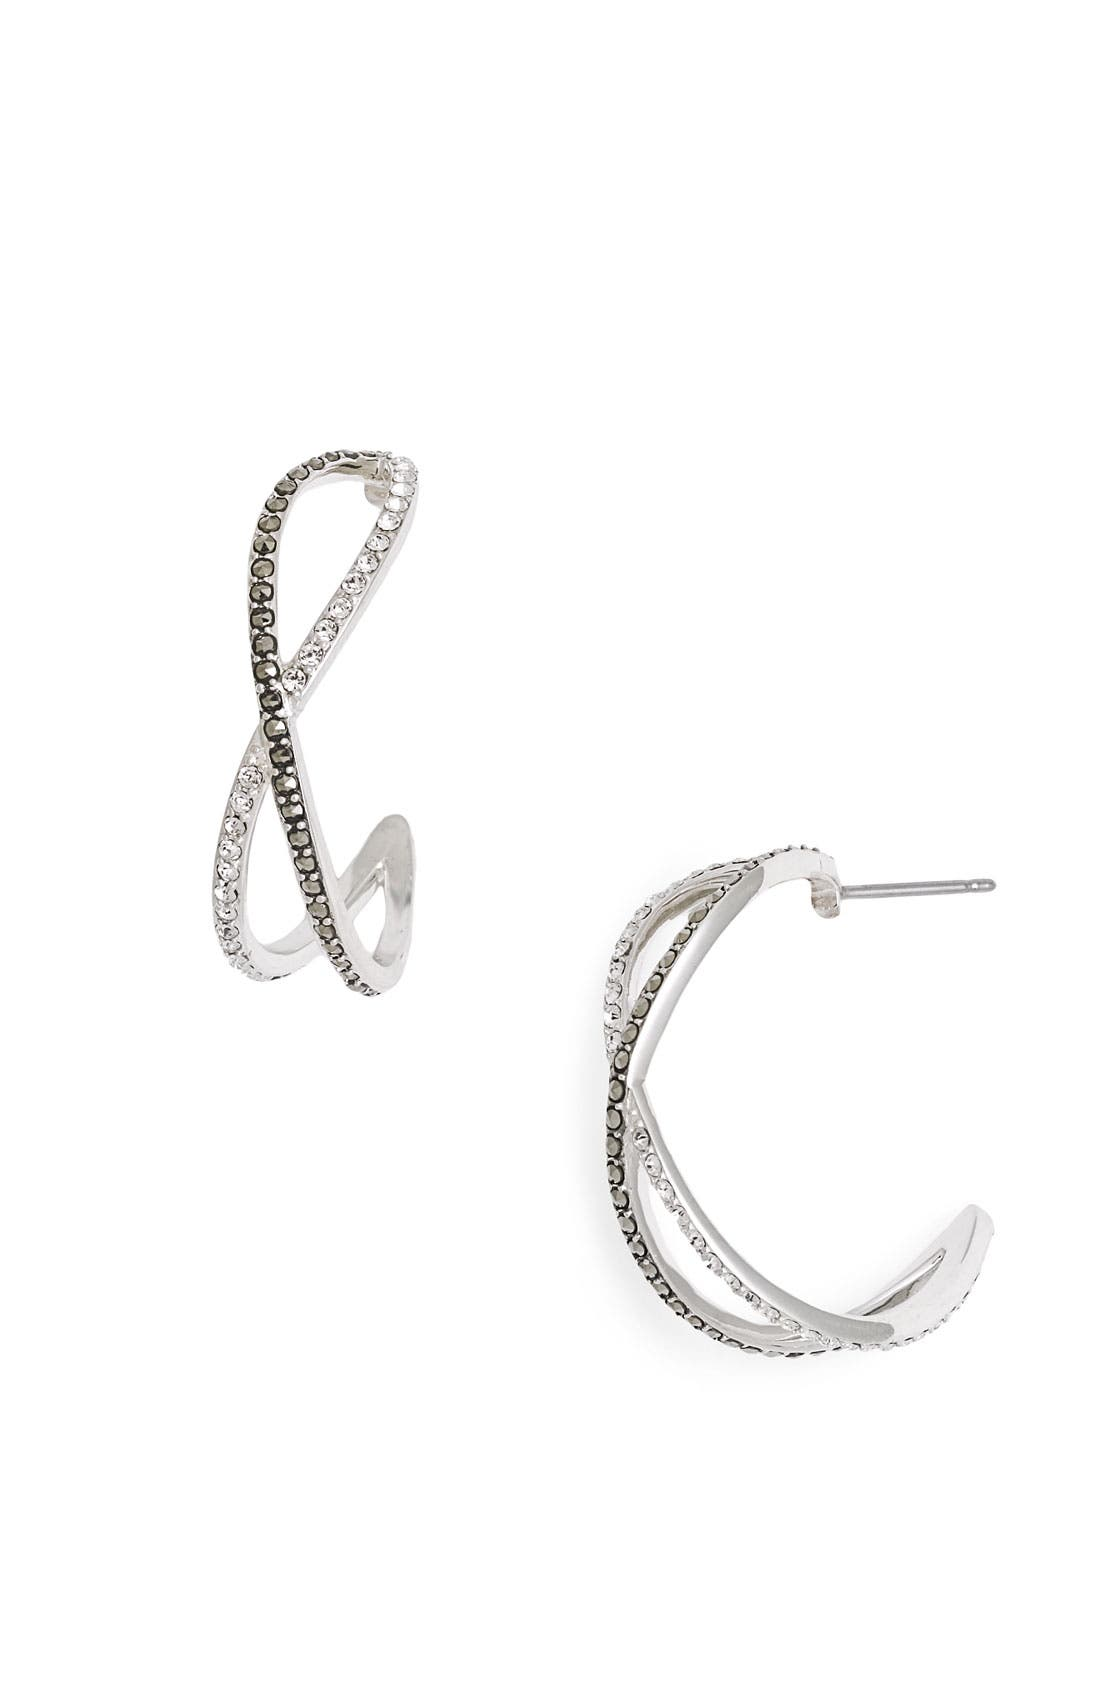 Main Image - Judith Jack 'Licorice' Small Hoop Earrings